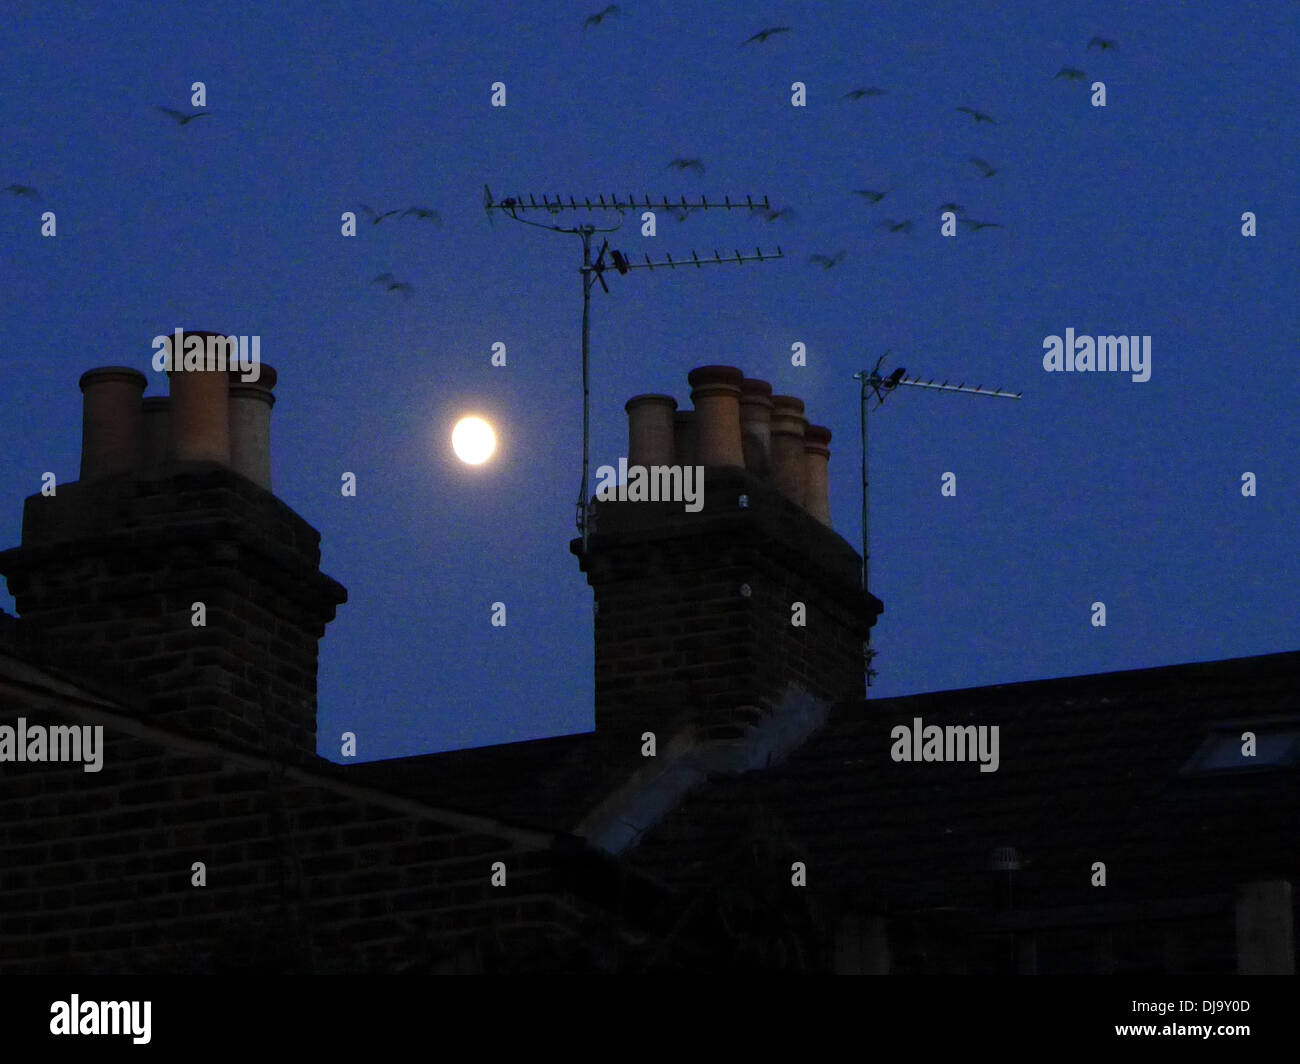 The moon shines over rooftops between two chimneys  at night as birds fly home to roost. - Stock Image